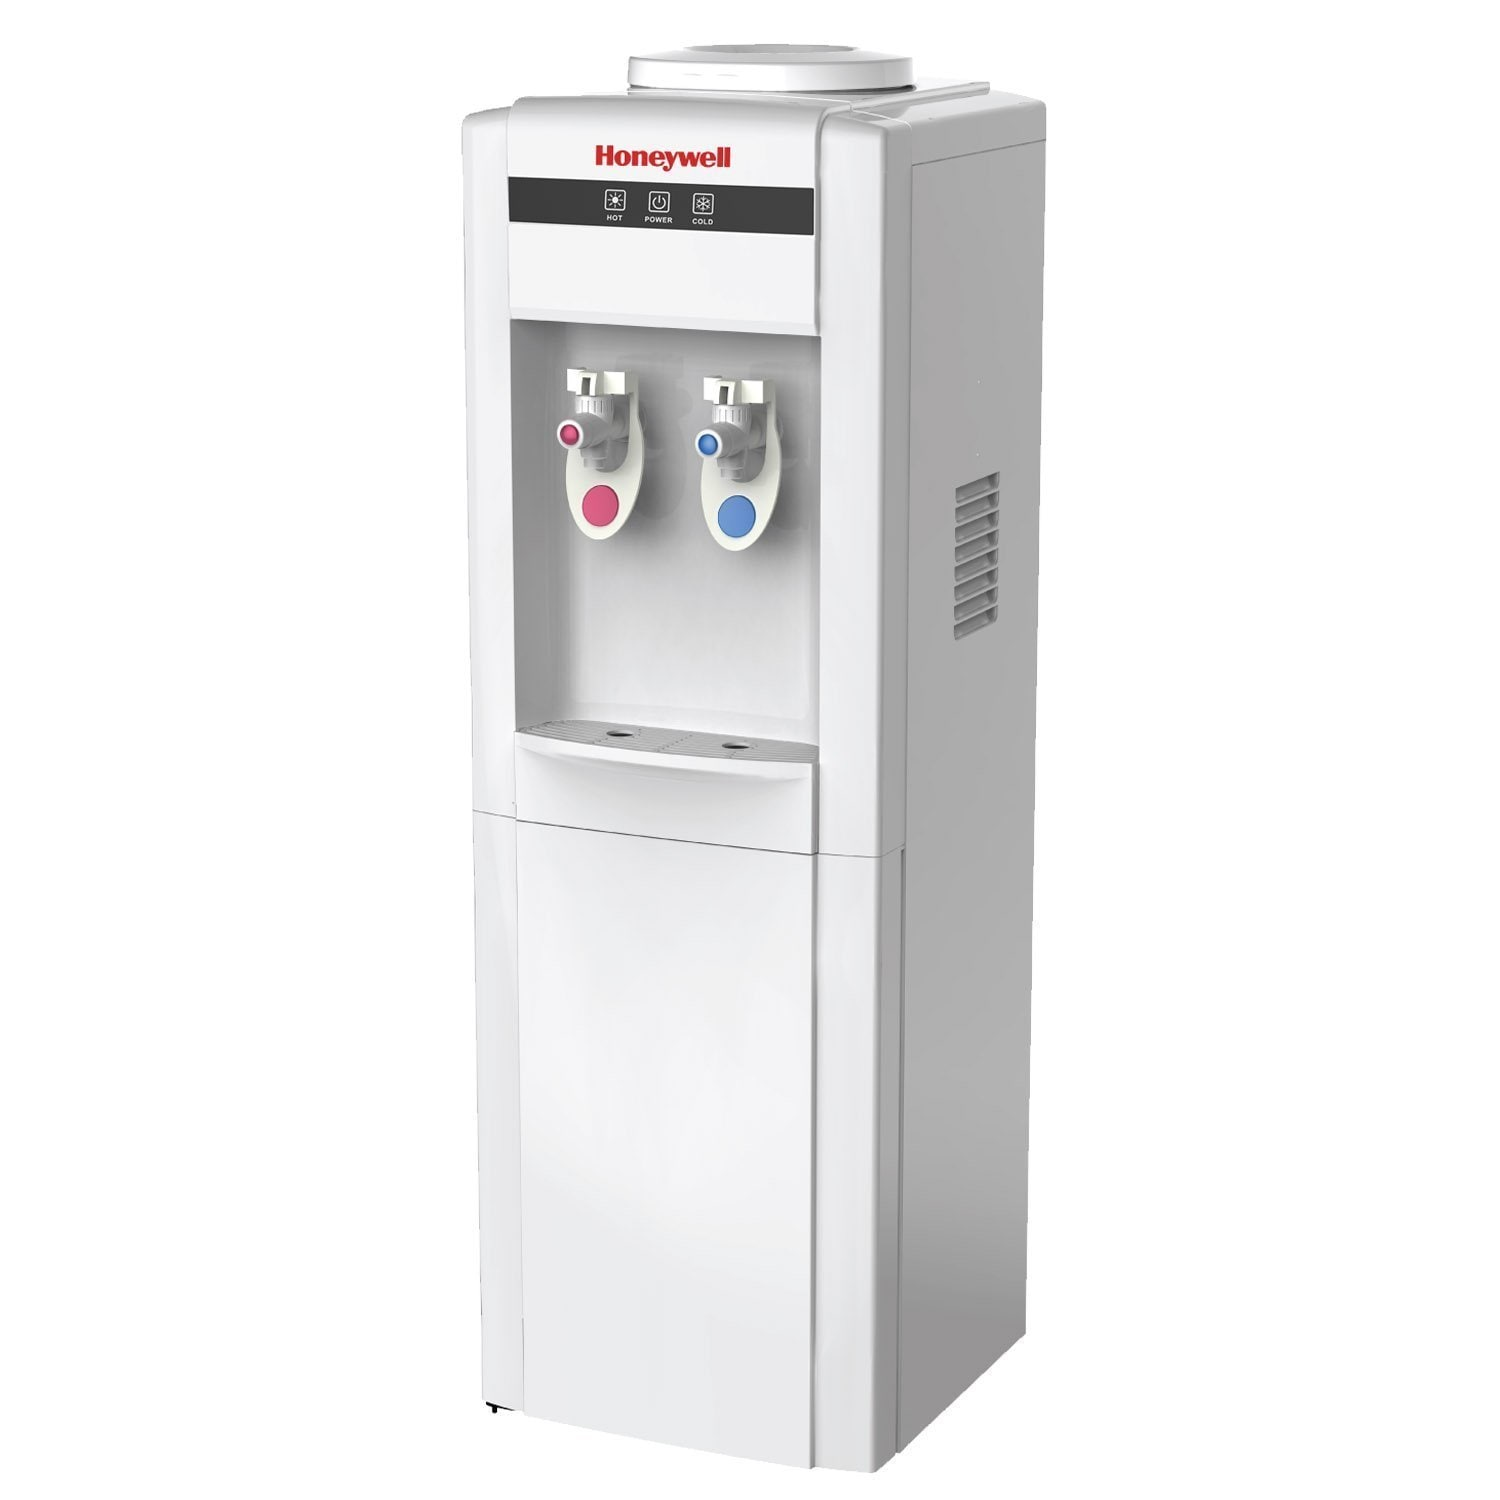 Honeywell HWB1052W Cabinet Freestanding Hot and Cold Wate...